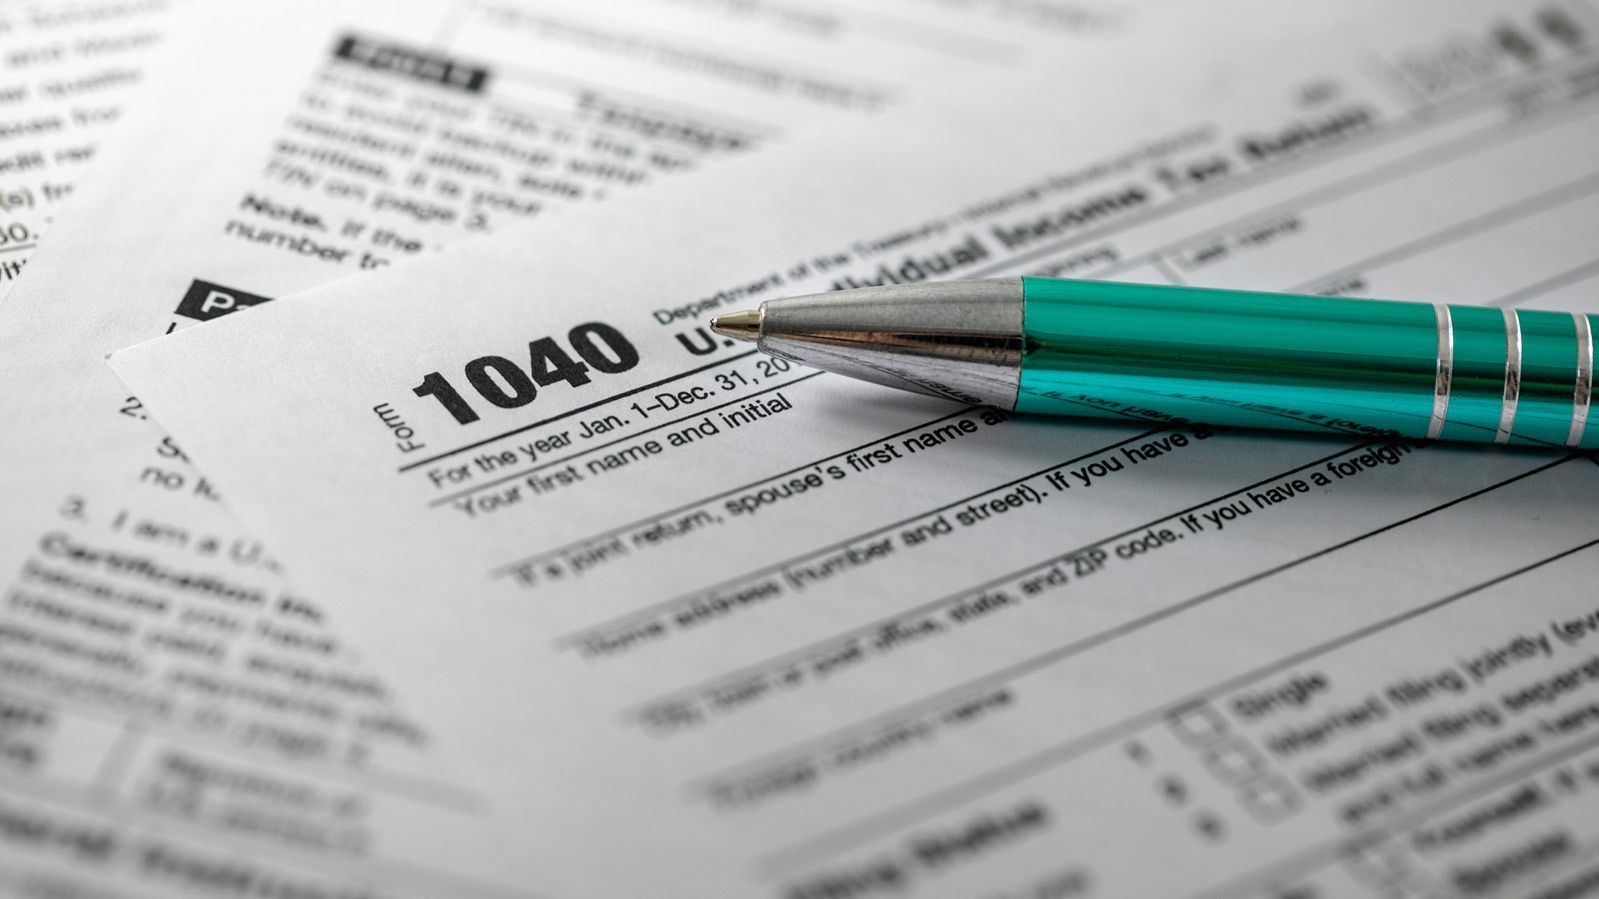 Today is April 15. If you can't file (or pay) taxes by midnight, here's what to do.